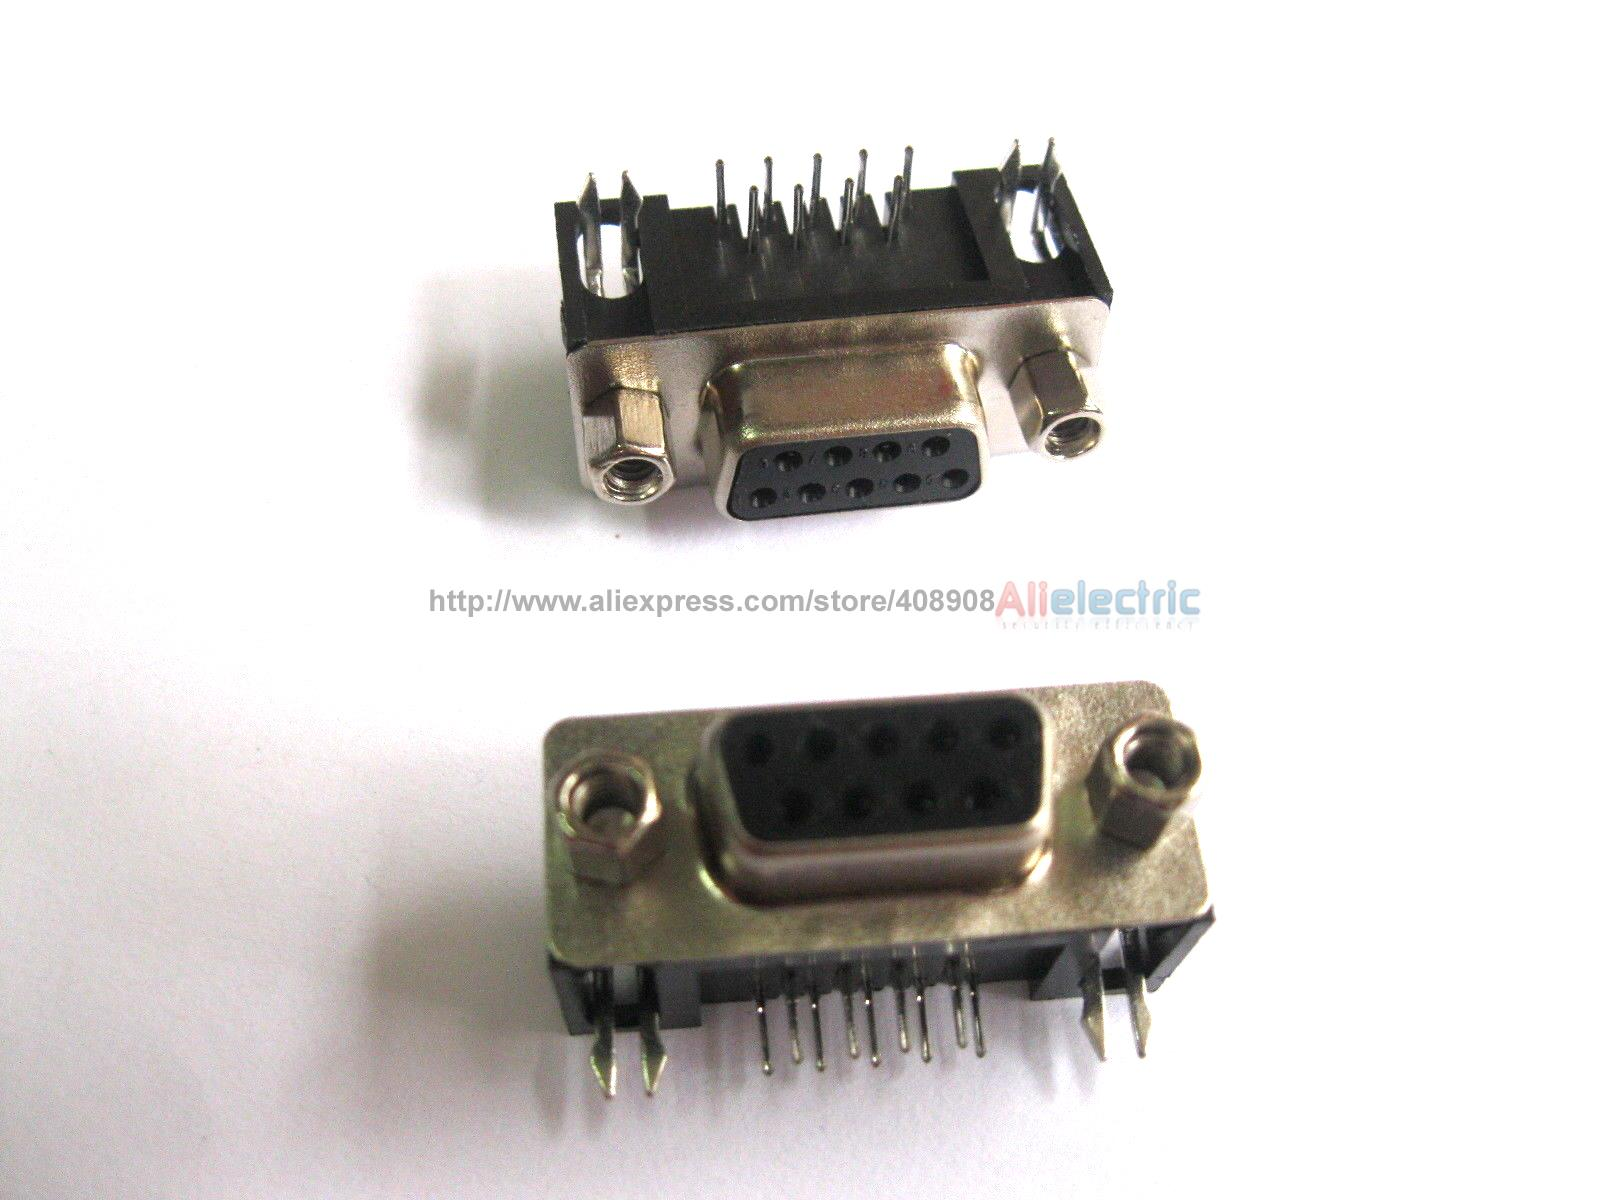 30 Pcs D Sub 9 Pin Female Connector with Right Angle <br>